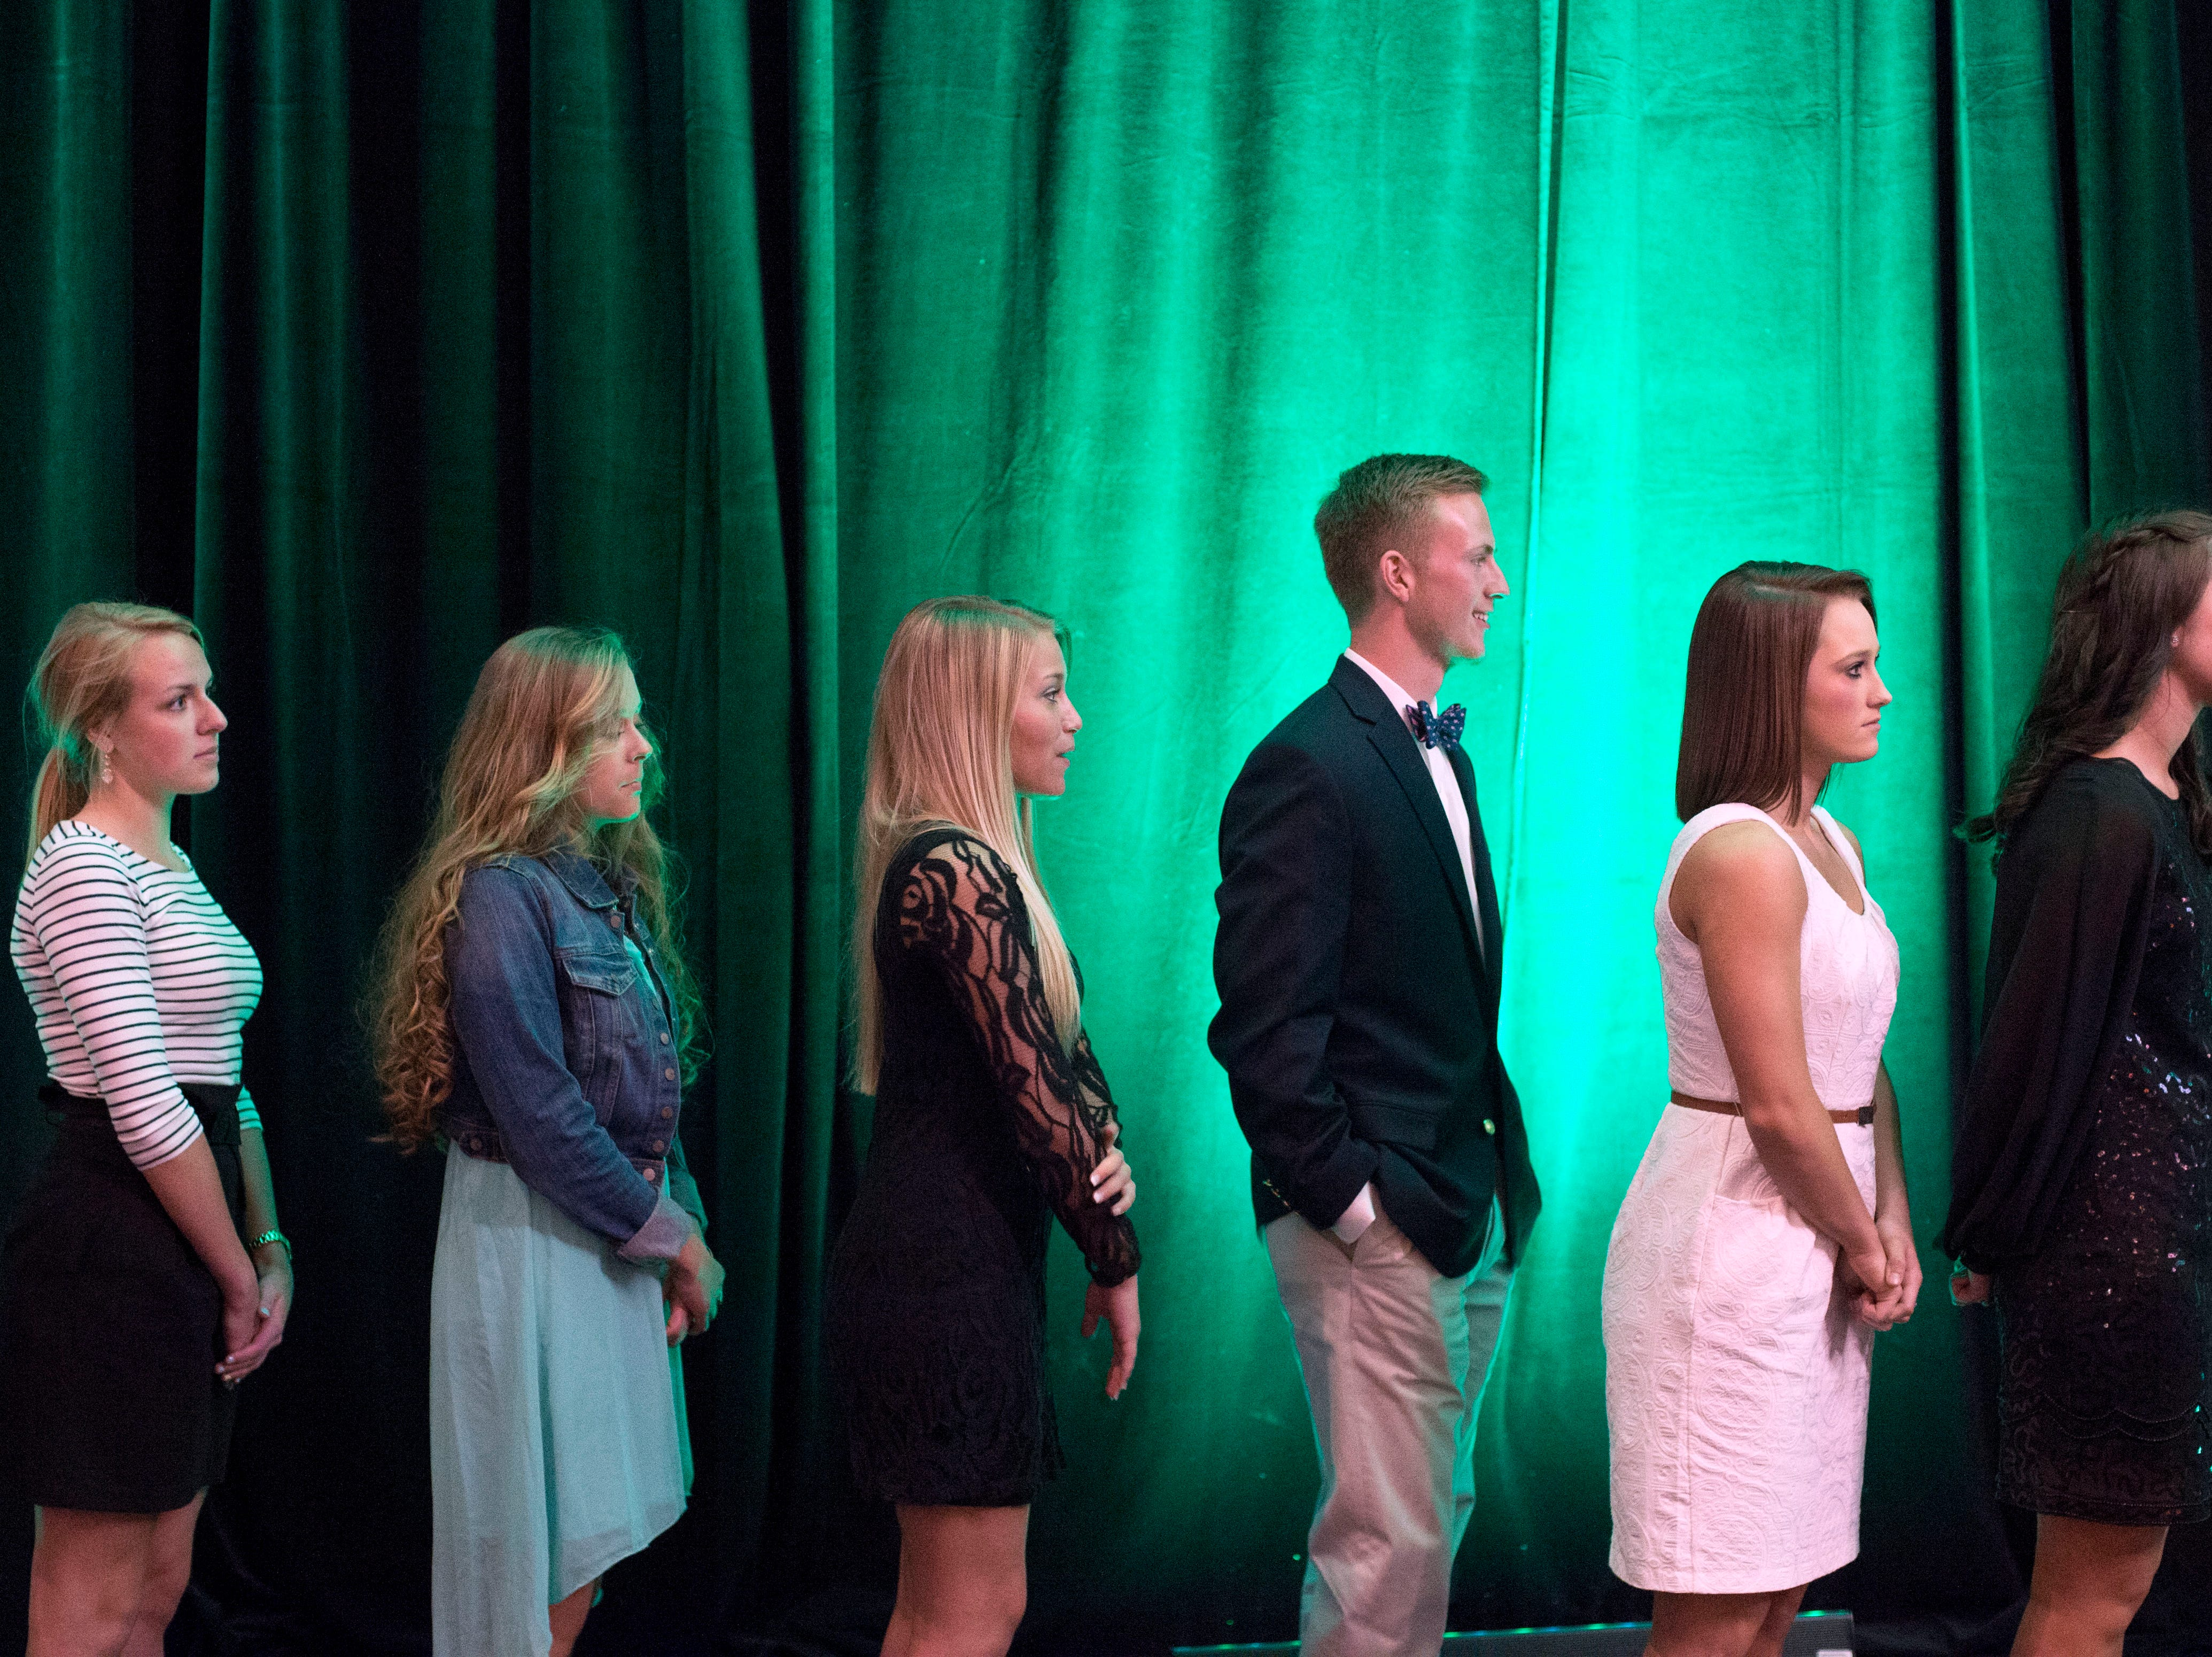 From right, Campbell County High School's Brooke Bane, Michaela Smith, Dakota Dossett, Bailey Doepel and Carter High School's Lindsey Fisher and Madeleine Helton wait in line to receive their awards during the Academic Achievers awards banquet at the Knoxville Convention Center on Thursday, April 23, 2015.